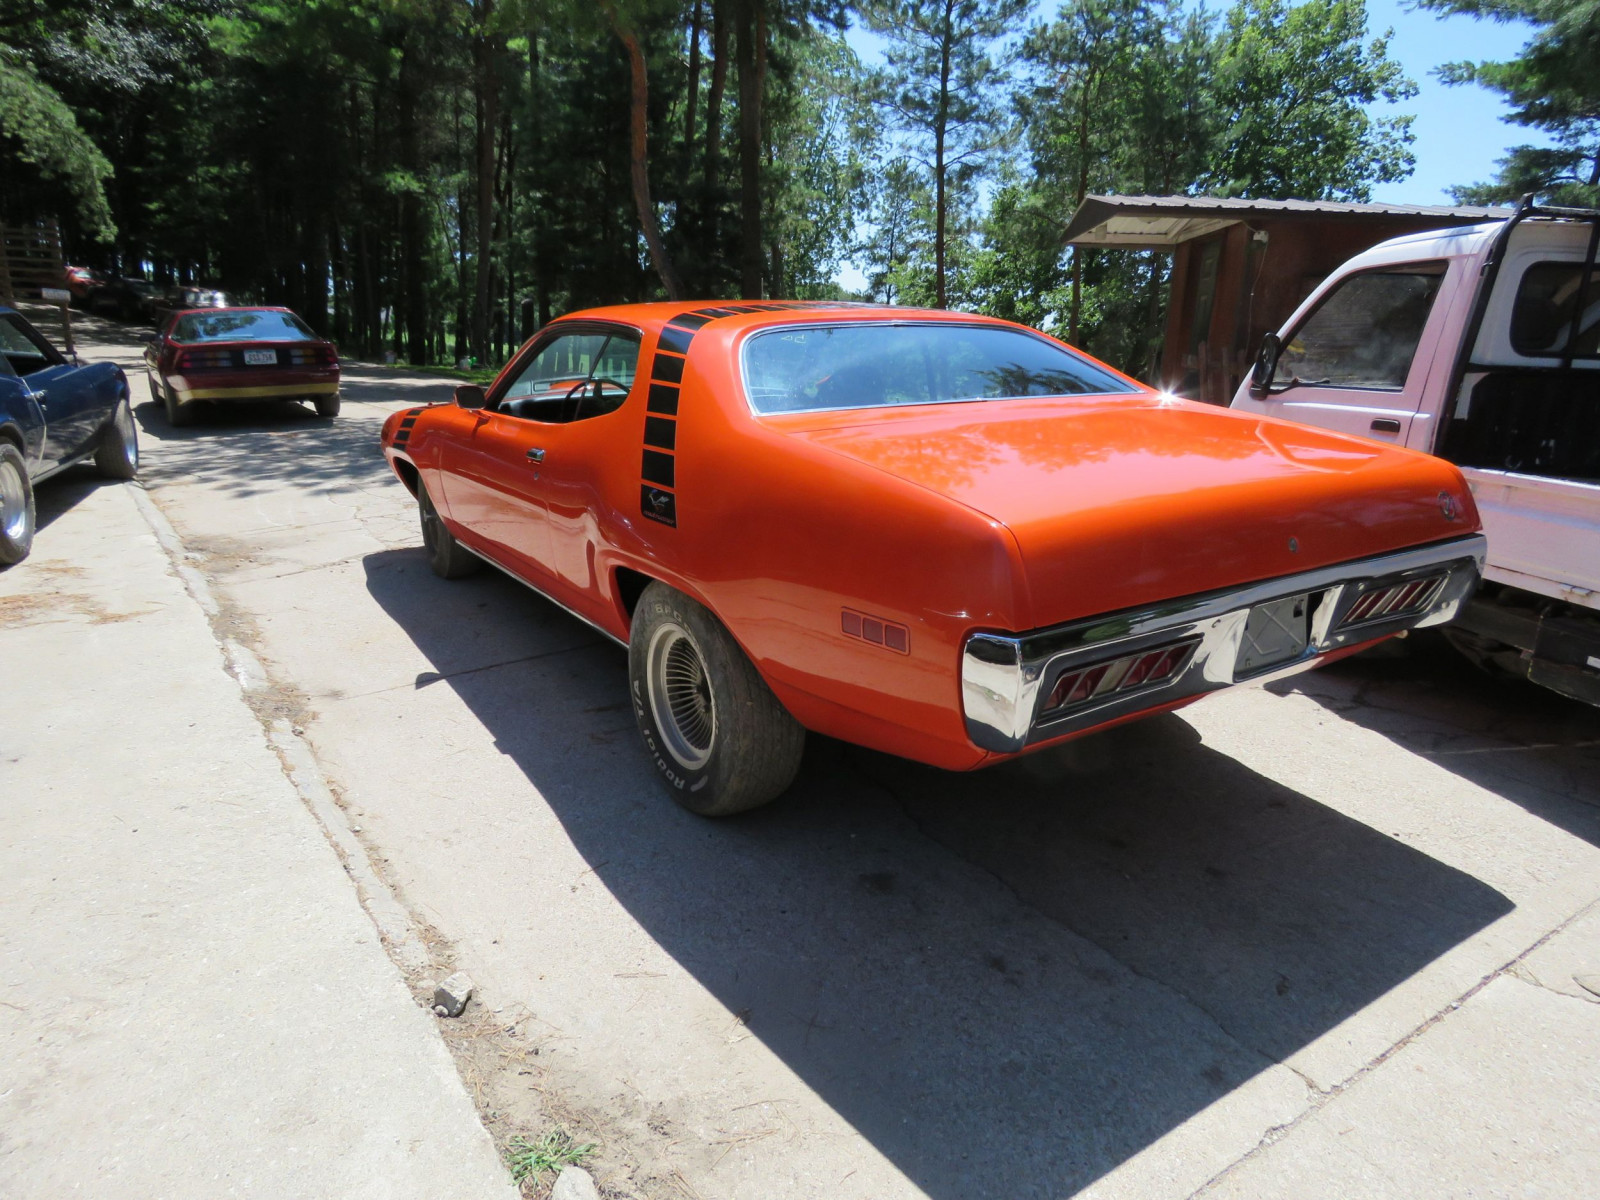 1971 Plymouth Satellite 2dr HT - Image 5